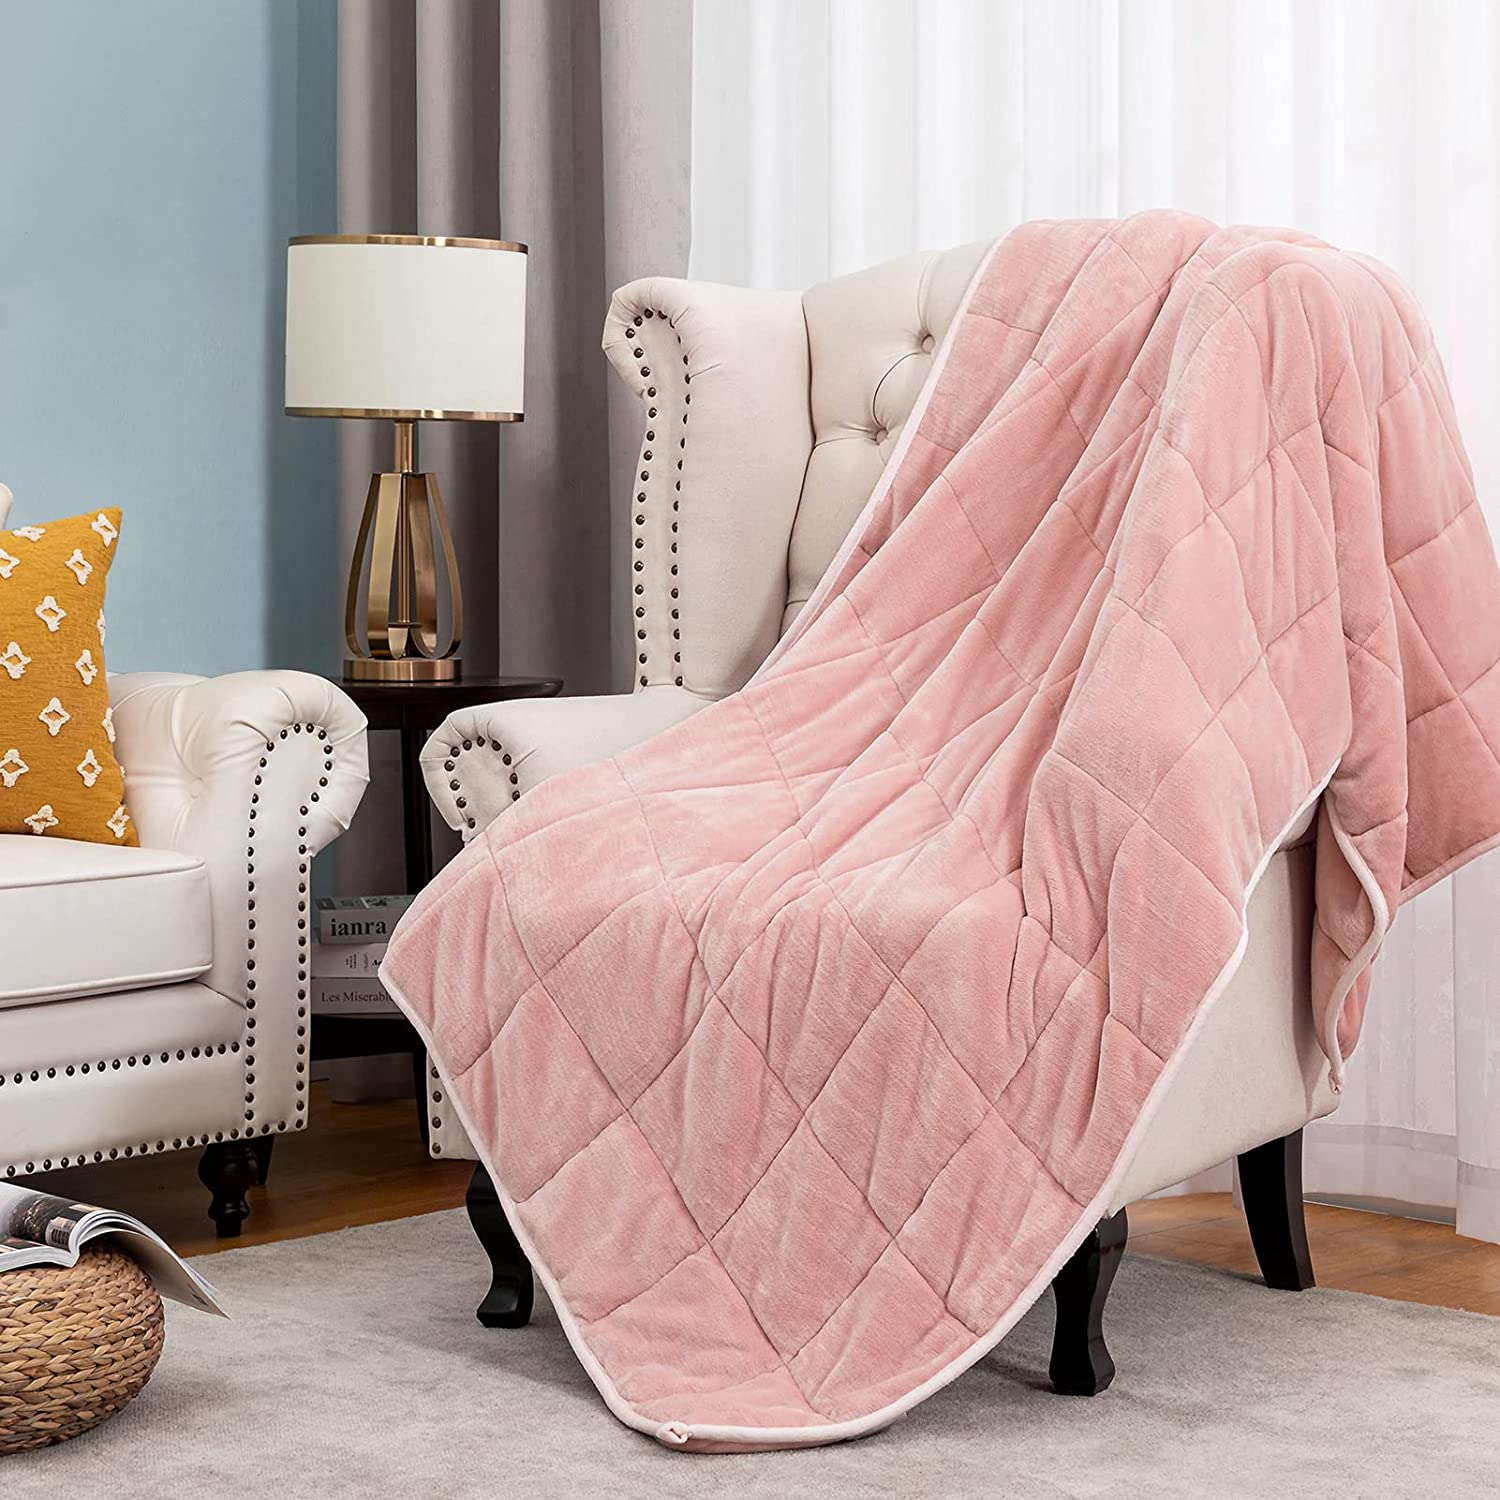 Microfiber National products Flannel Fuzzy Weighted Special price for a limited time Oeko-Tex Blanket Standard 100